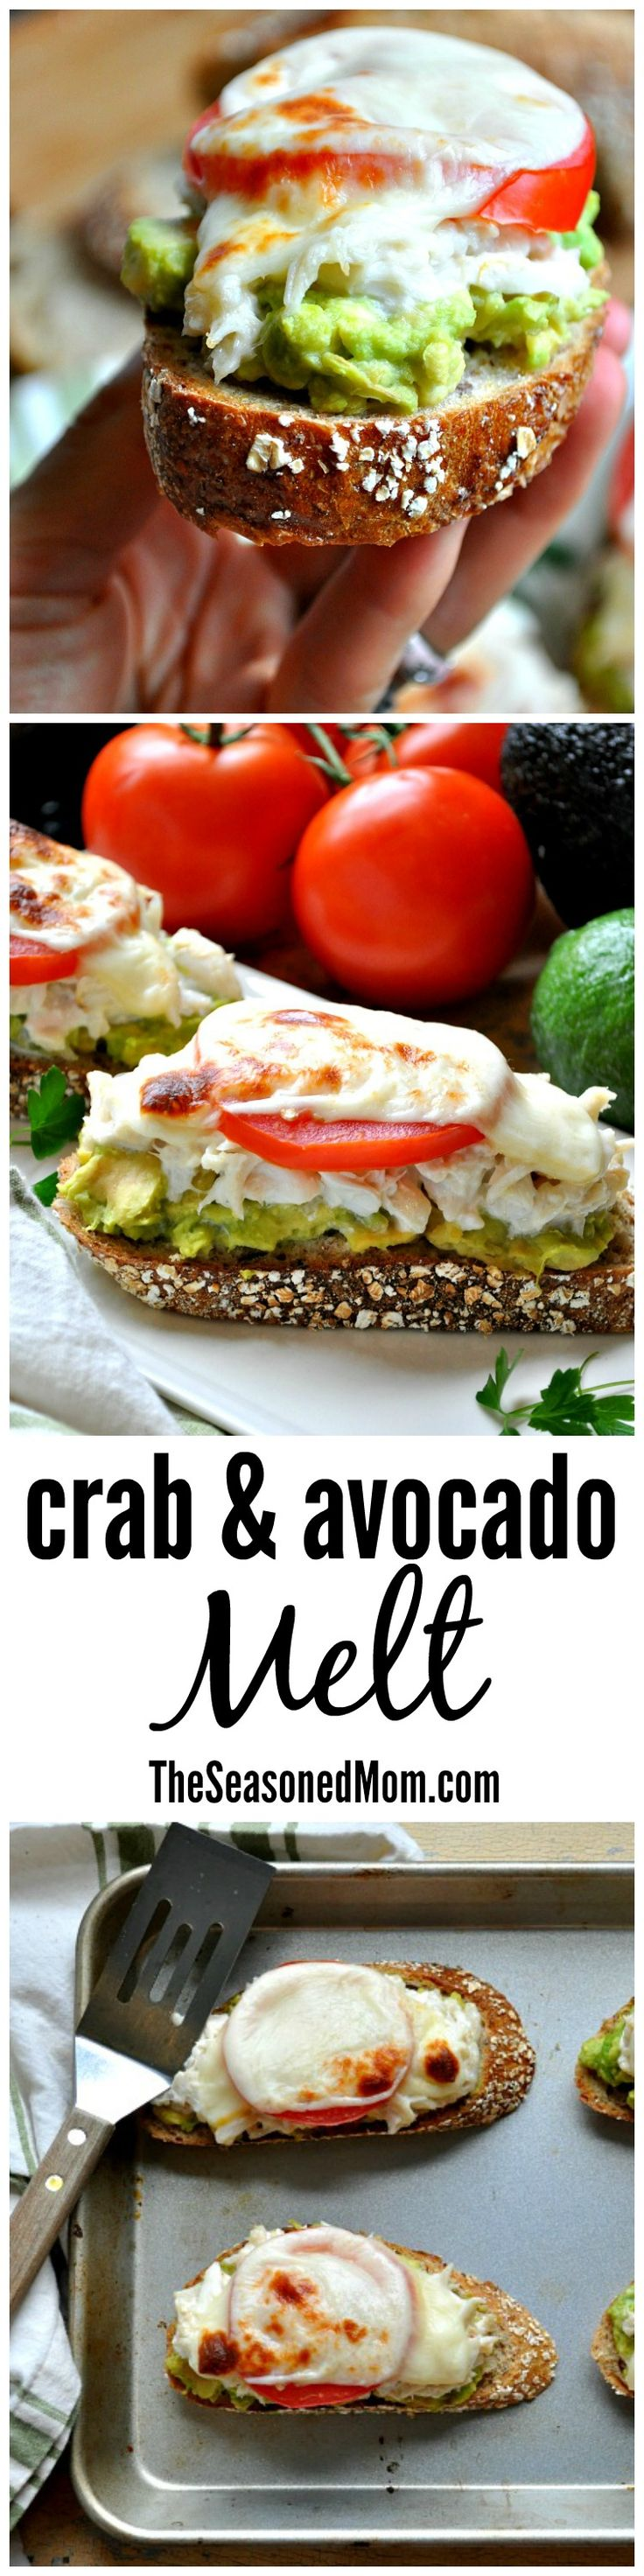 An upgrade on the classic tuna melt, this Crab and Avocado Melt is simple, fresh, and FAST! Make it small for a party appetizer, or serve a larger version for an easy lunch or weeknight dinner! #LifesBetterWithTheLion #ad